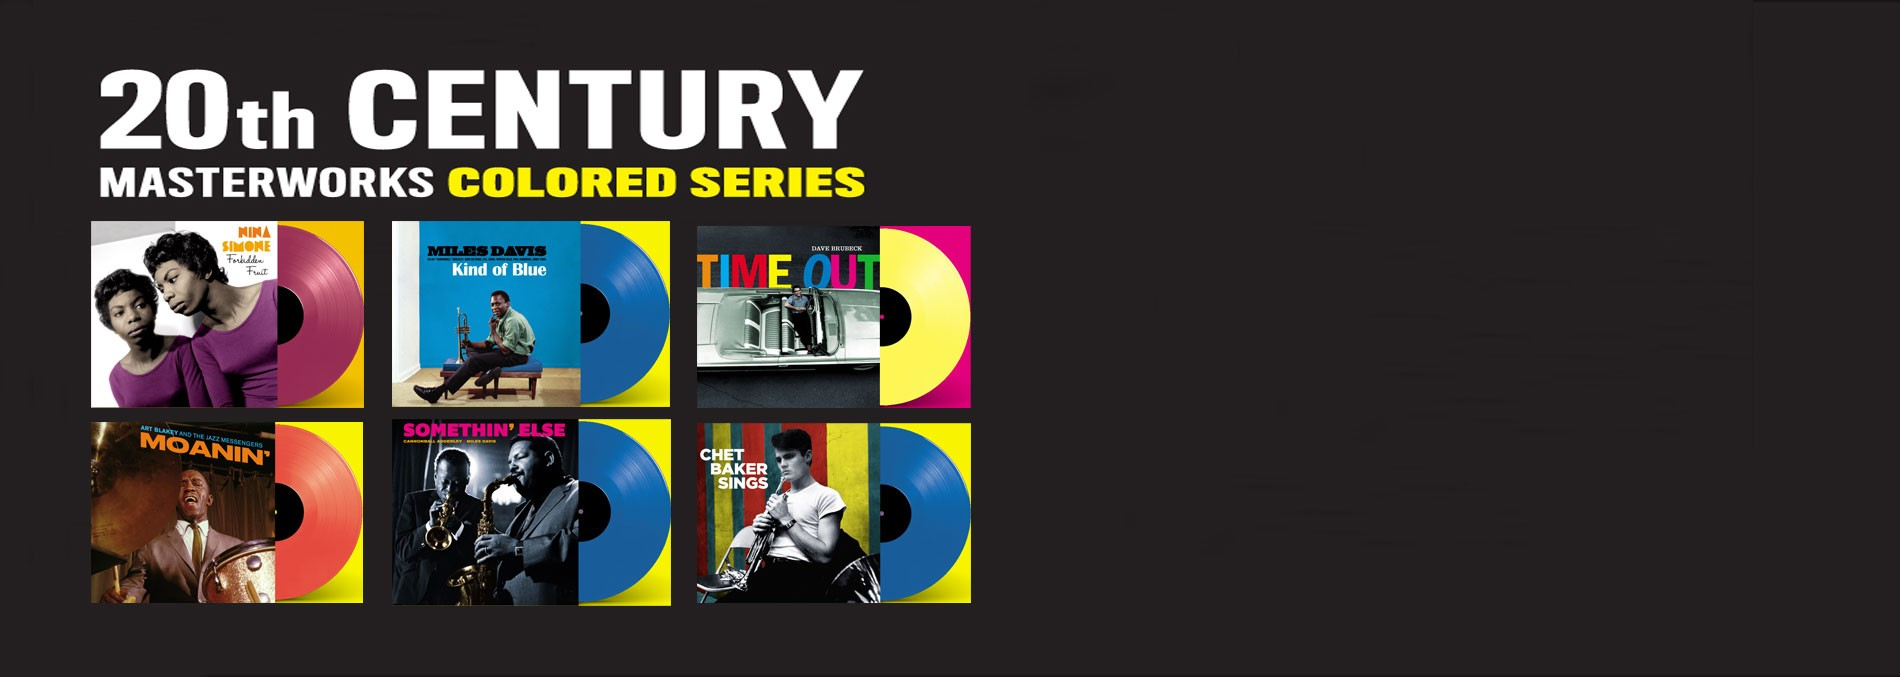 20TH CENTURY MASTERWORKS COLORED SERIES